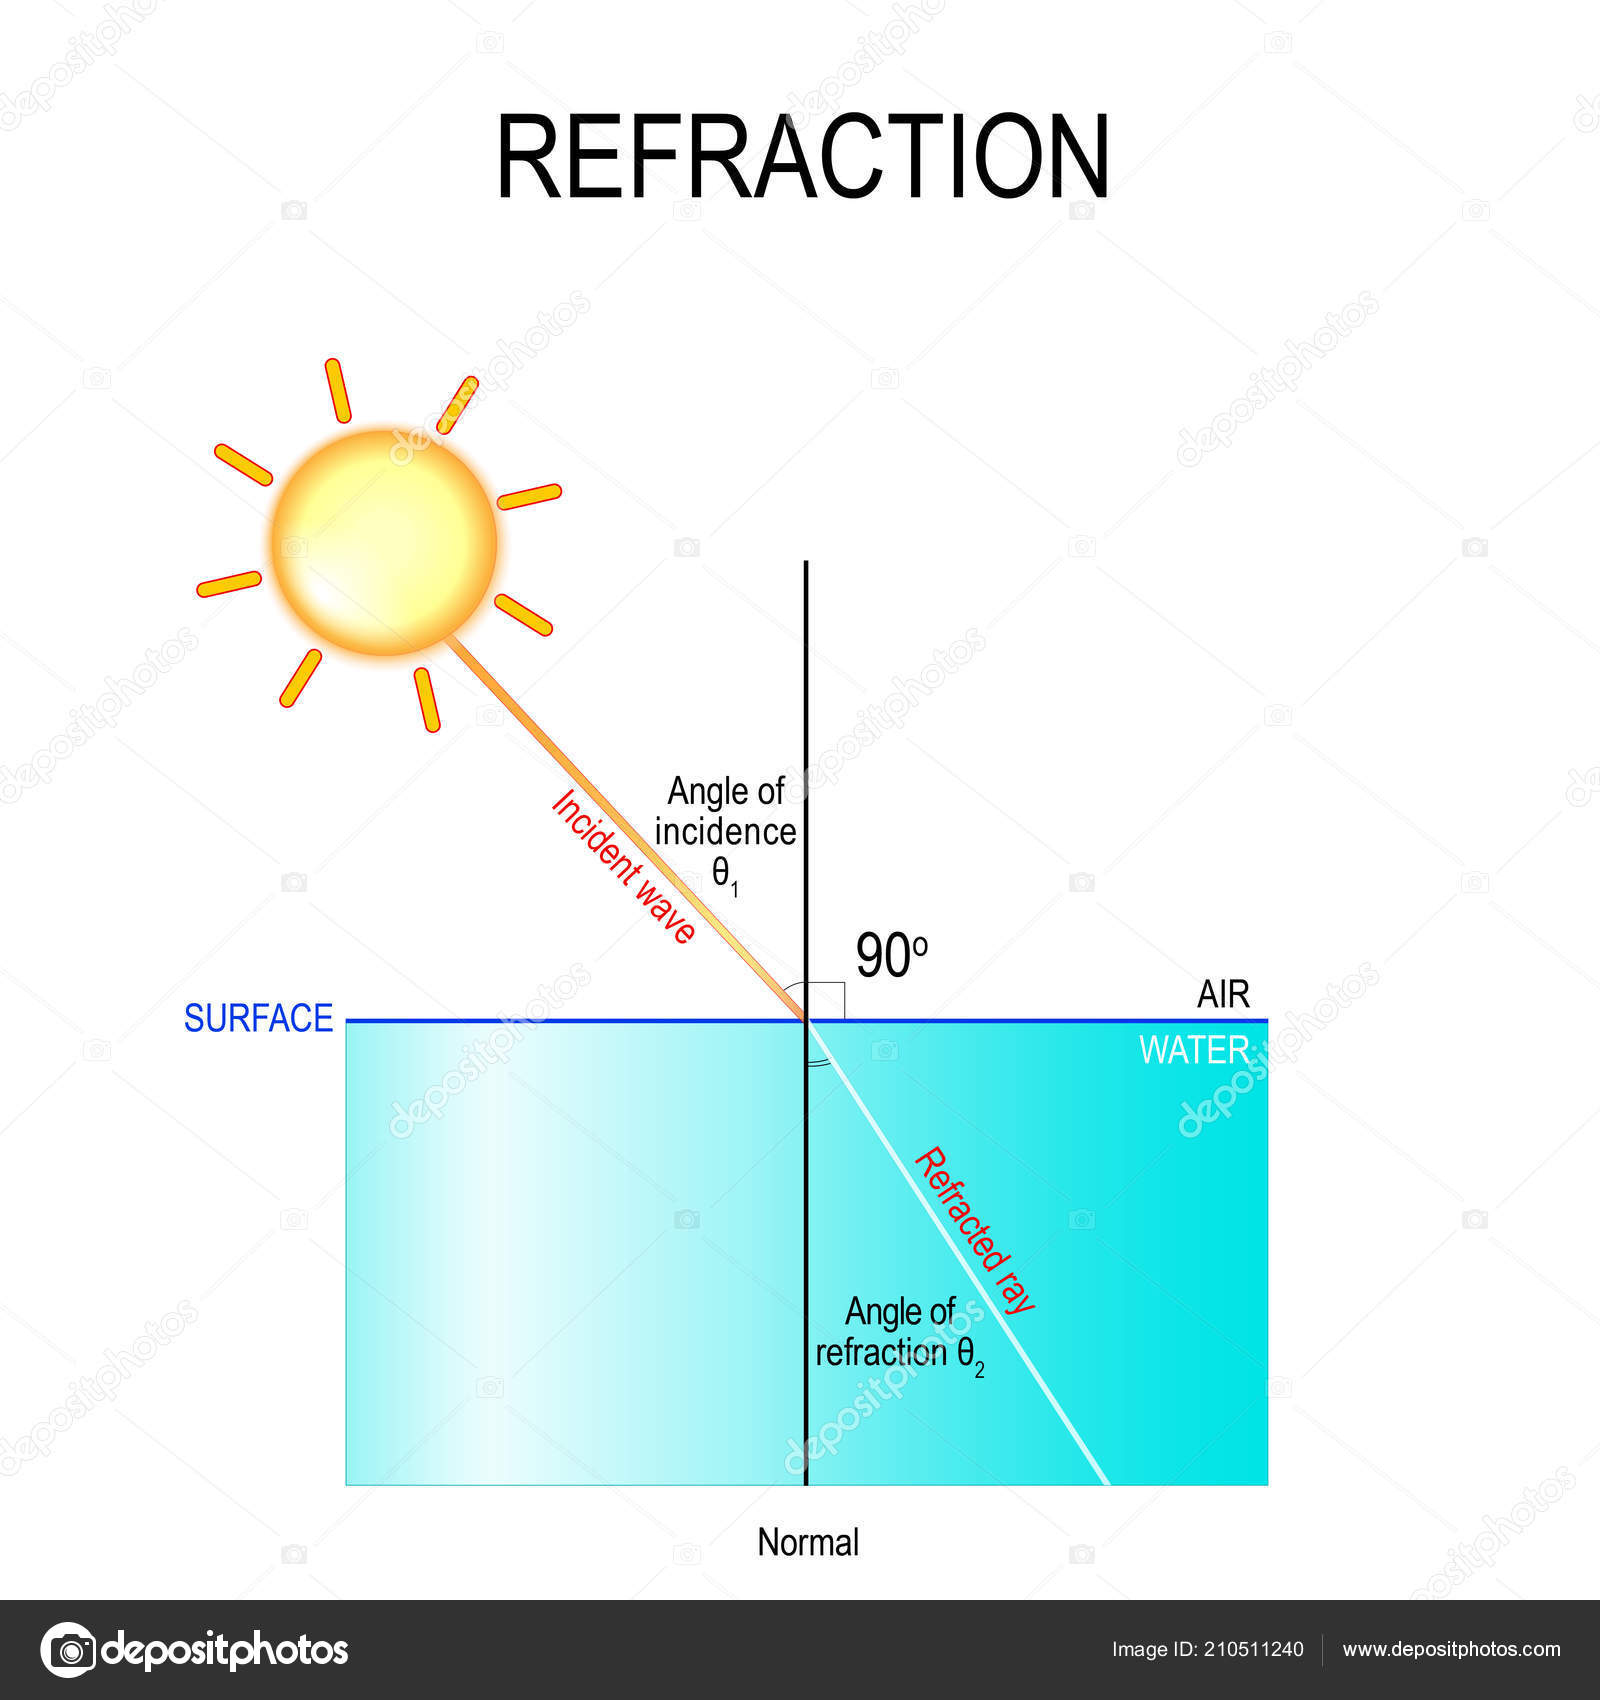 hight resolution of the light is first travelling through the air and then it passes through the water water is more dense than the air the light rays bend in the water